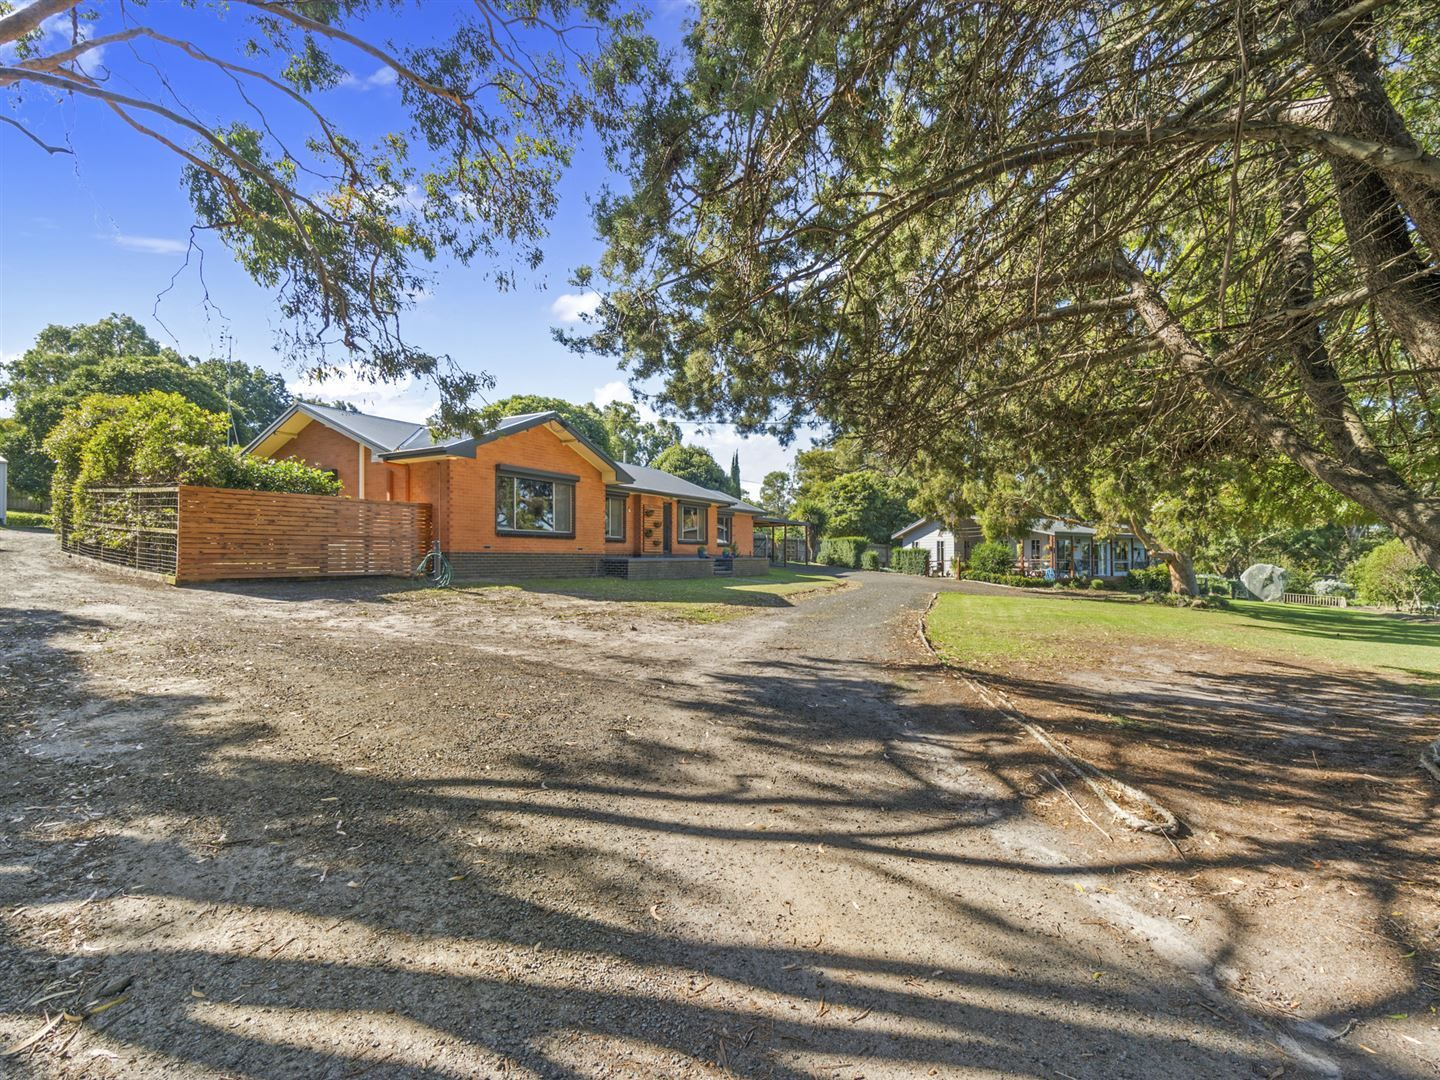 249 South Gippsland Highway, Yarram VIC 3971, Image 1